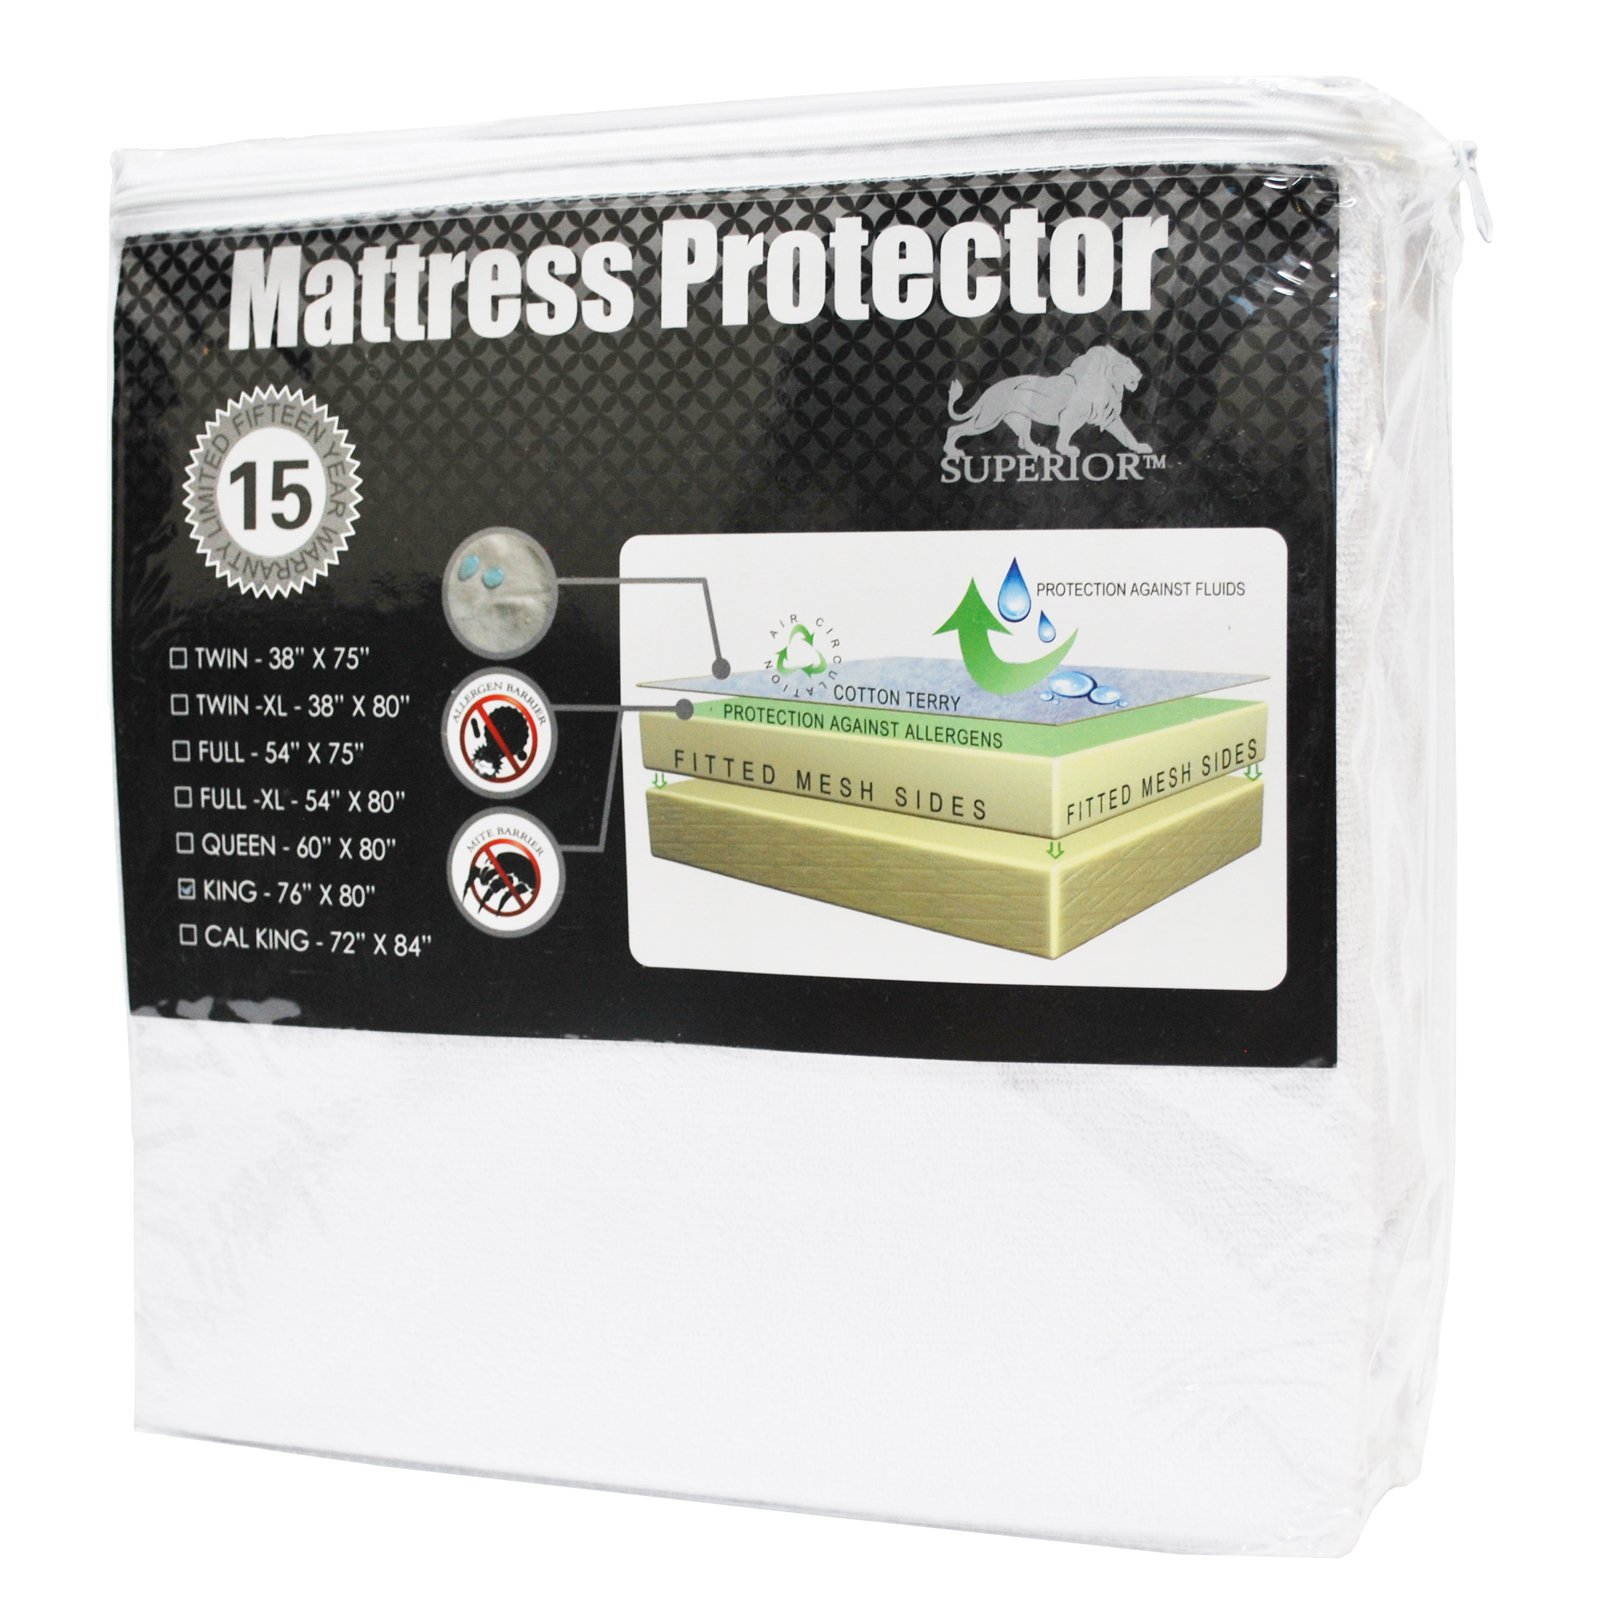 Superior Waterproof Mattress Protector